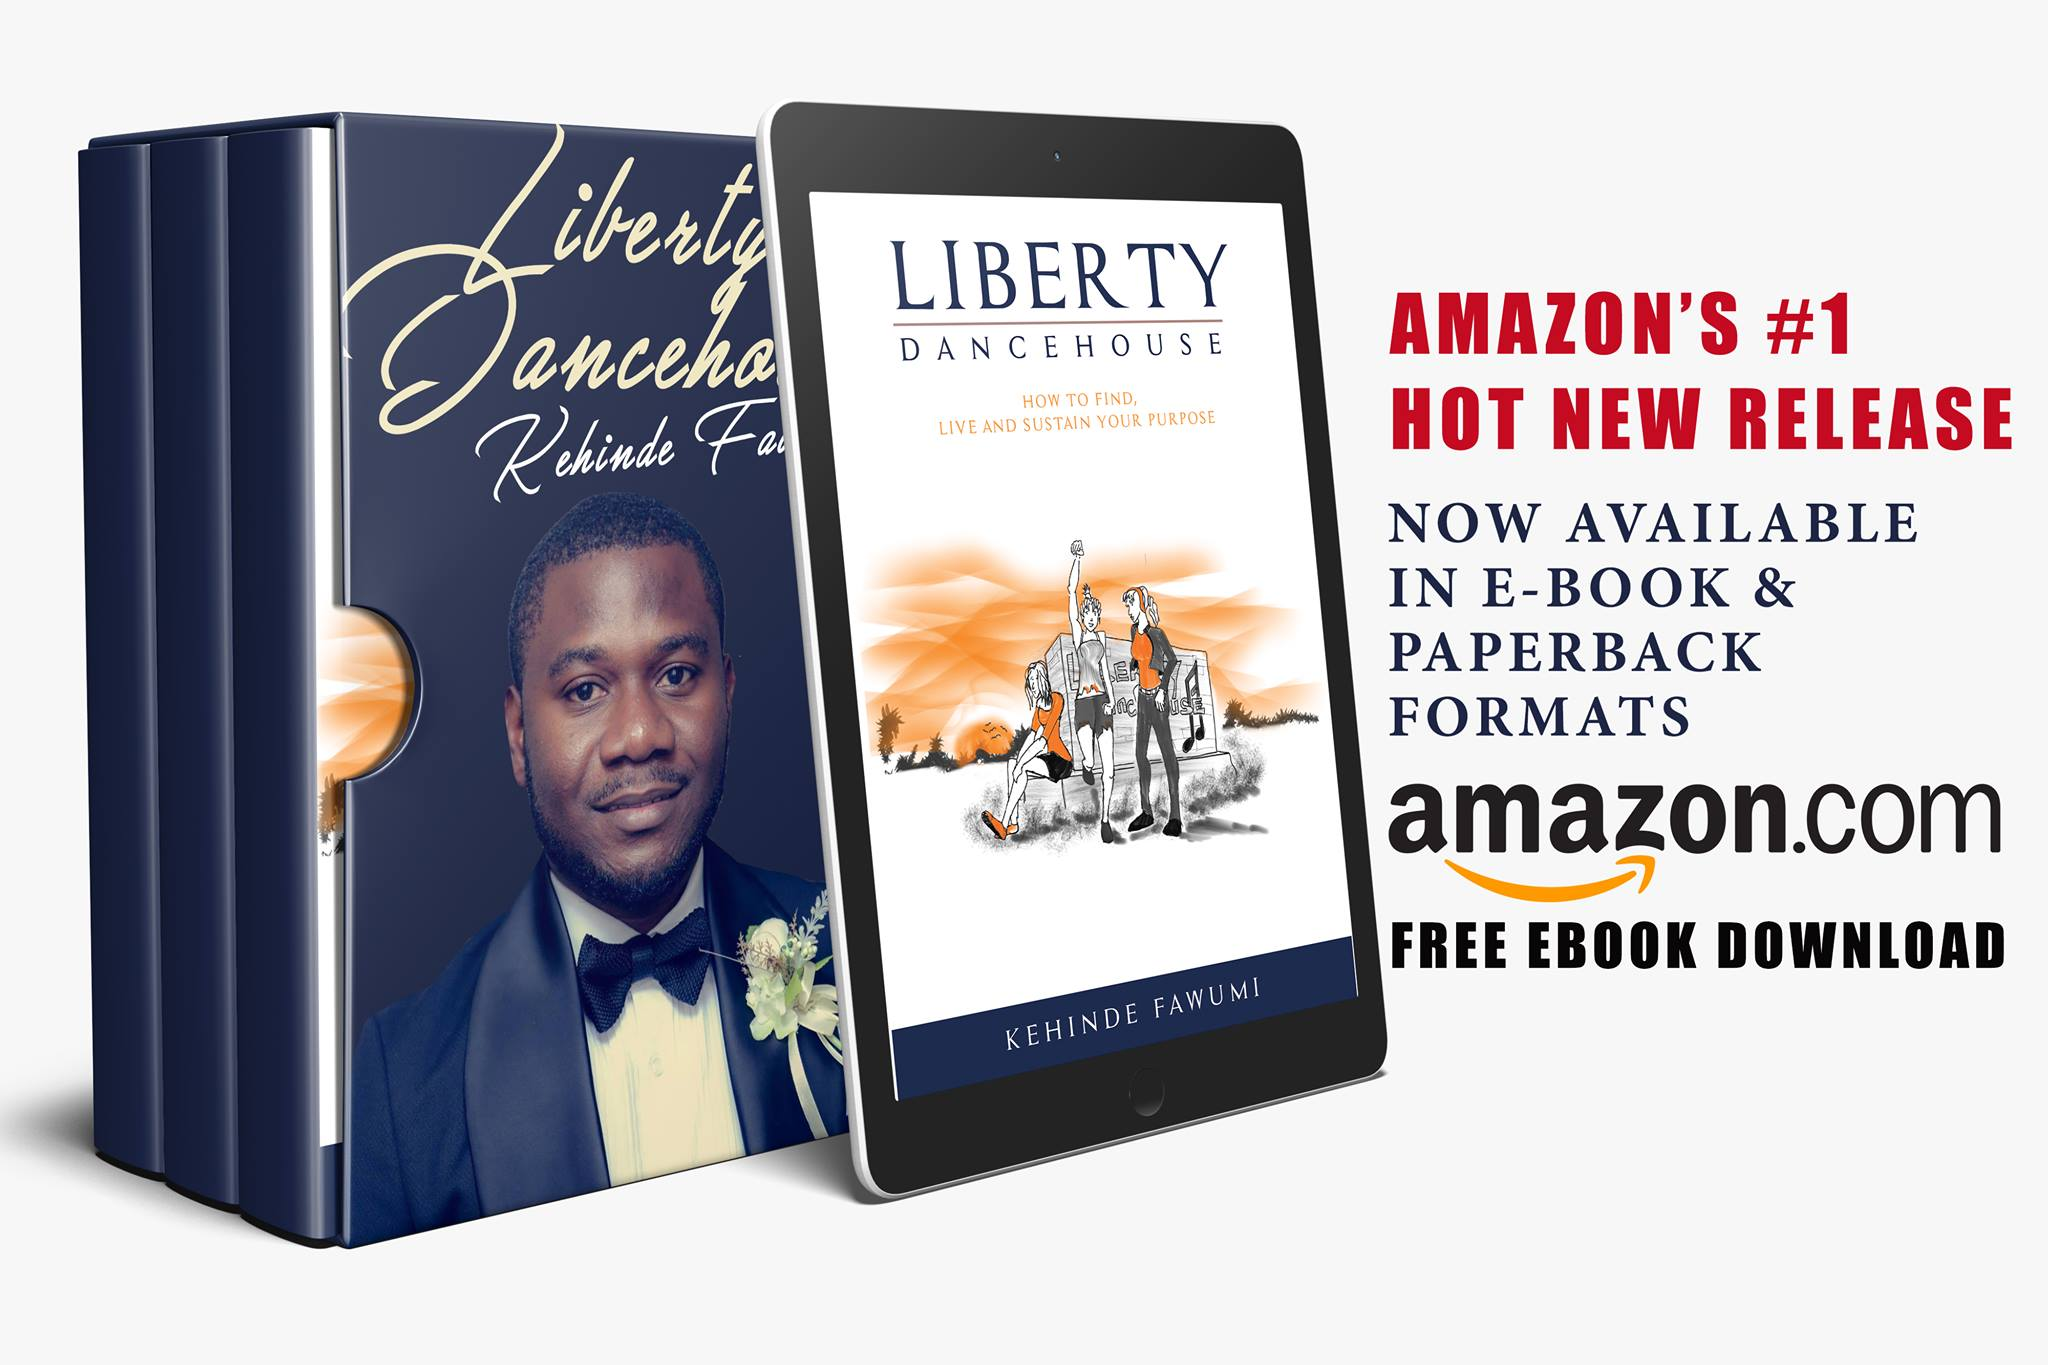 Amazon's #1 Hot New Release – Liberty Dancehouse! <br> <a href='http://kehindefawumi.com/wp-content/uploads/2017/09/Liberty-Dancehouse-InnerlayoutFINAL.pdf' title='Liberty Dancehouse' target='_blank'>Download FREE Book Now!</a>